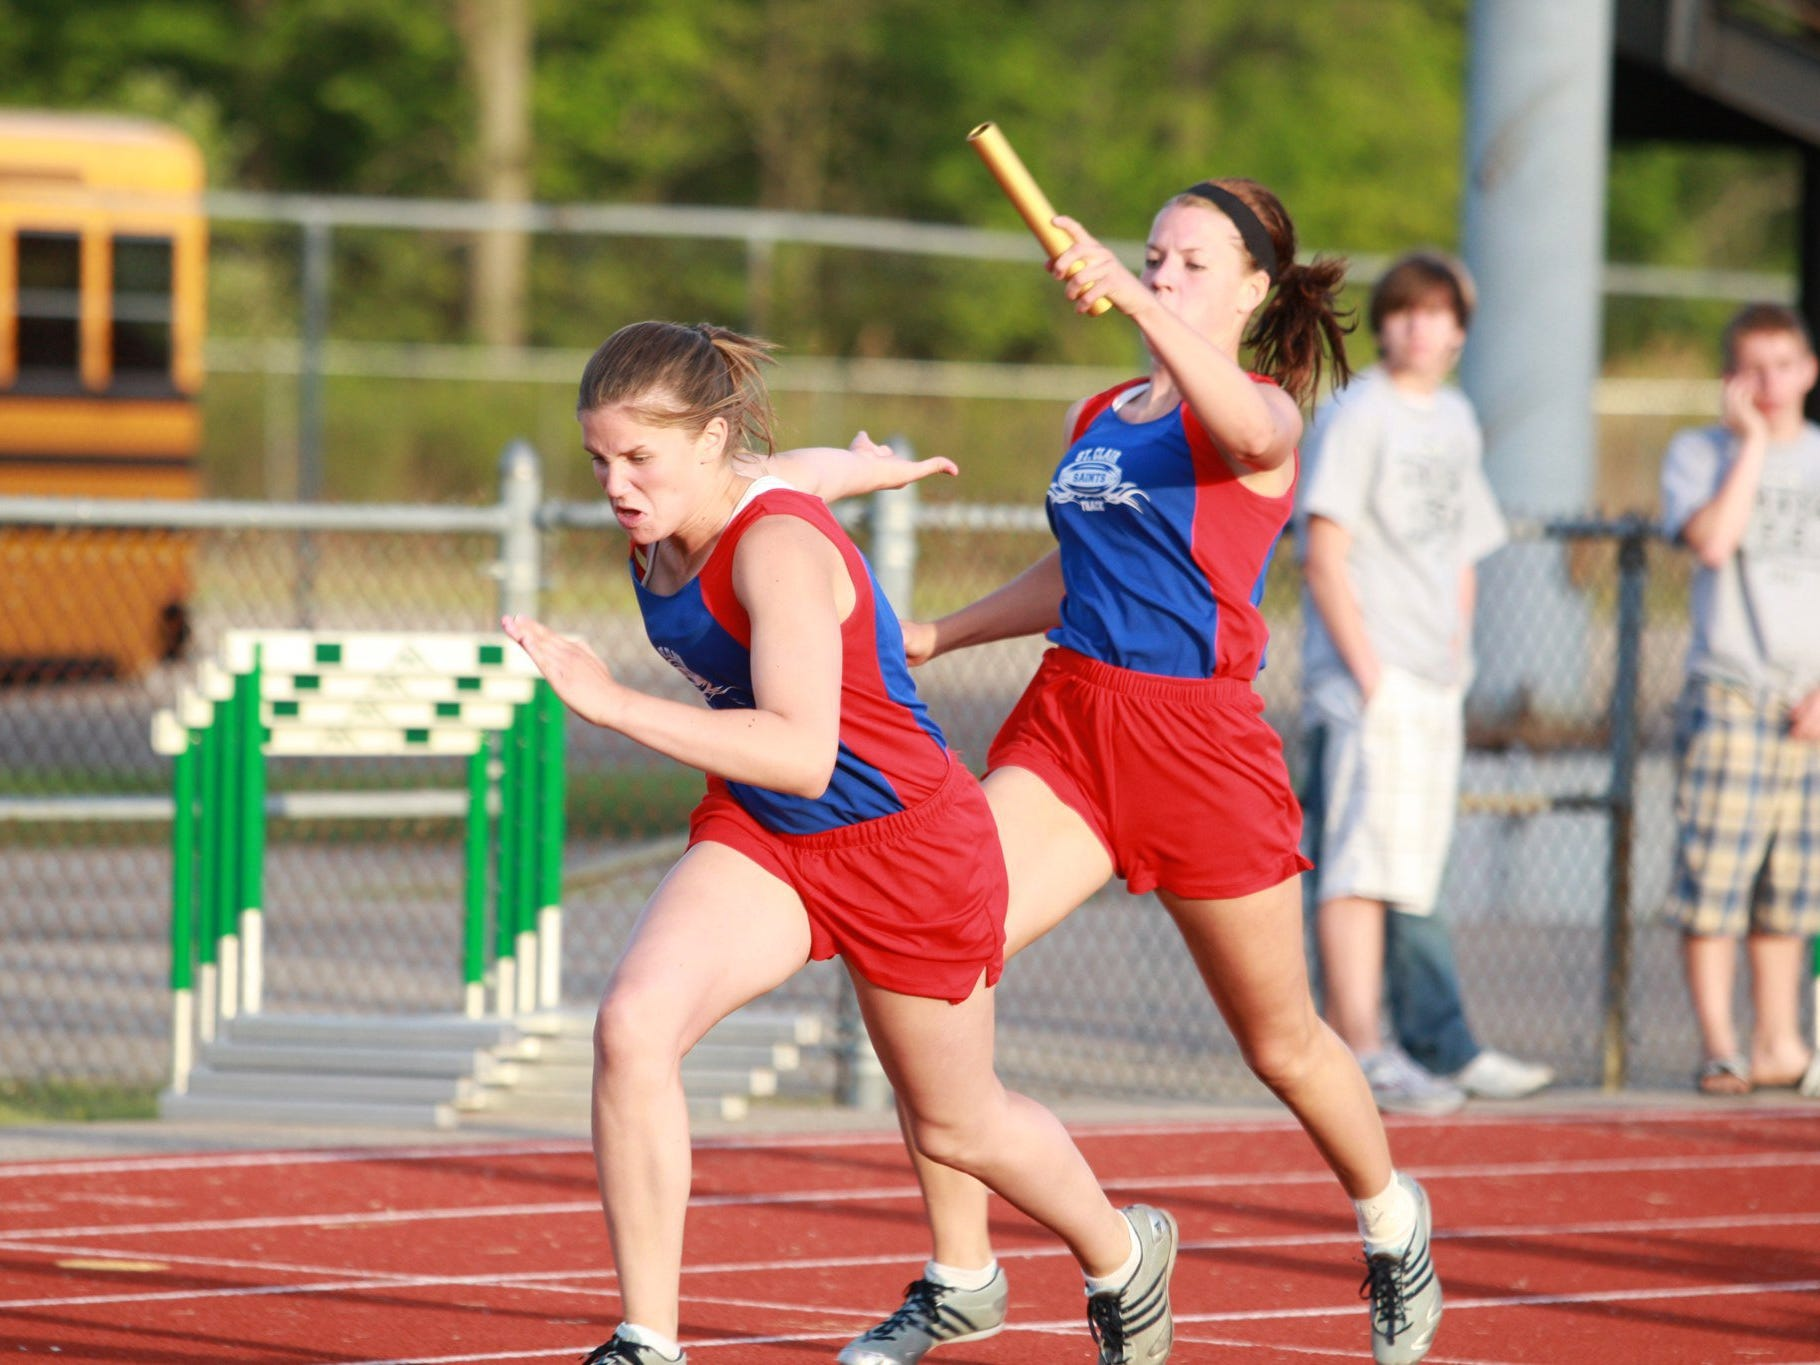 Addie Ingles passes to Courtney Ingles during a track and field event.